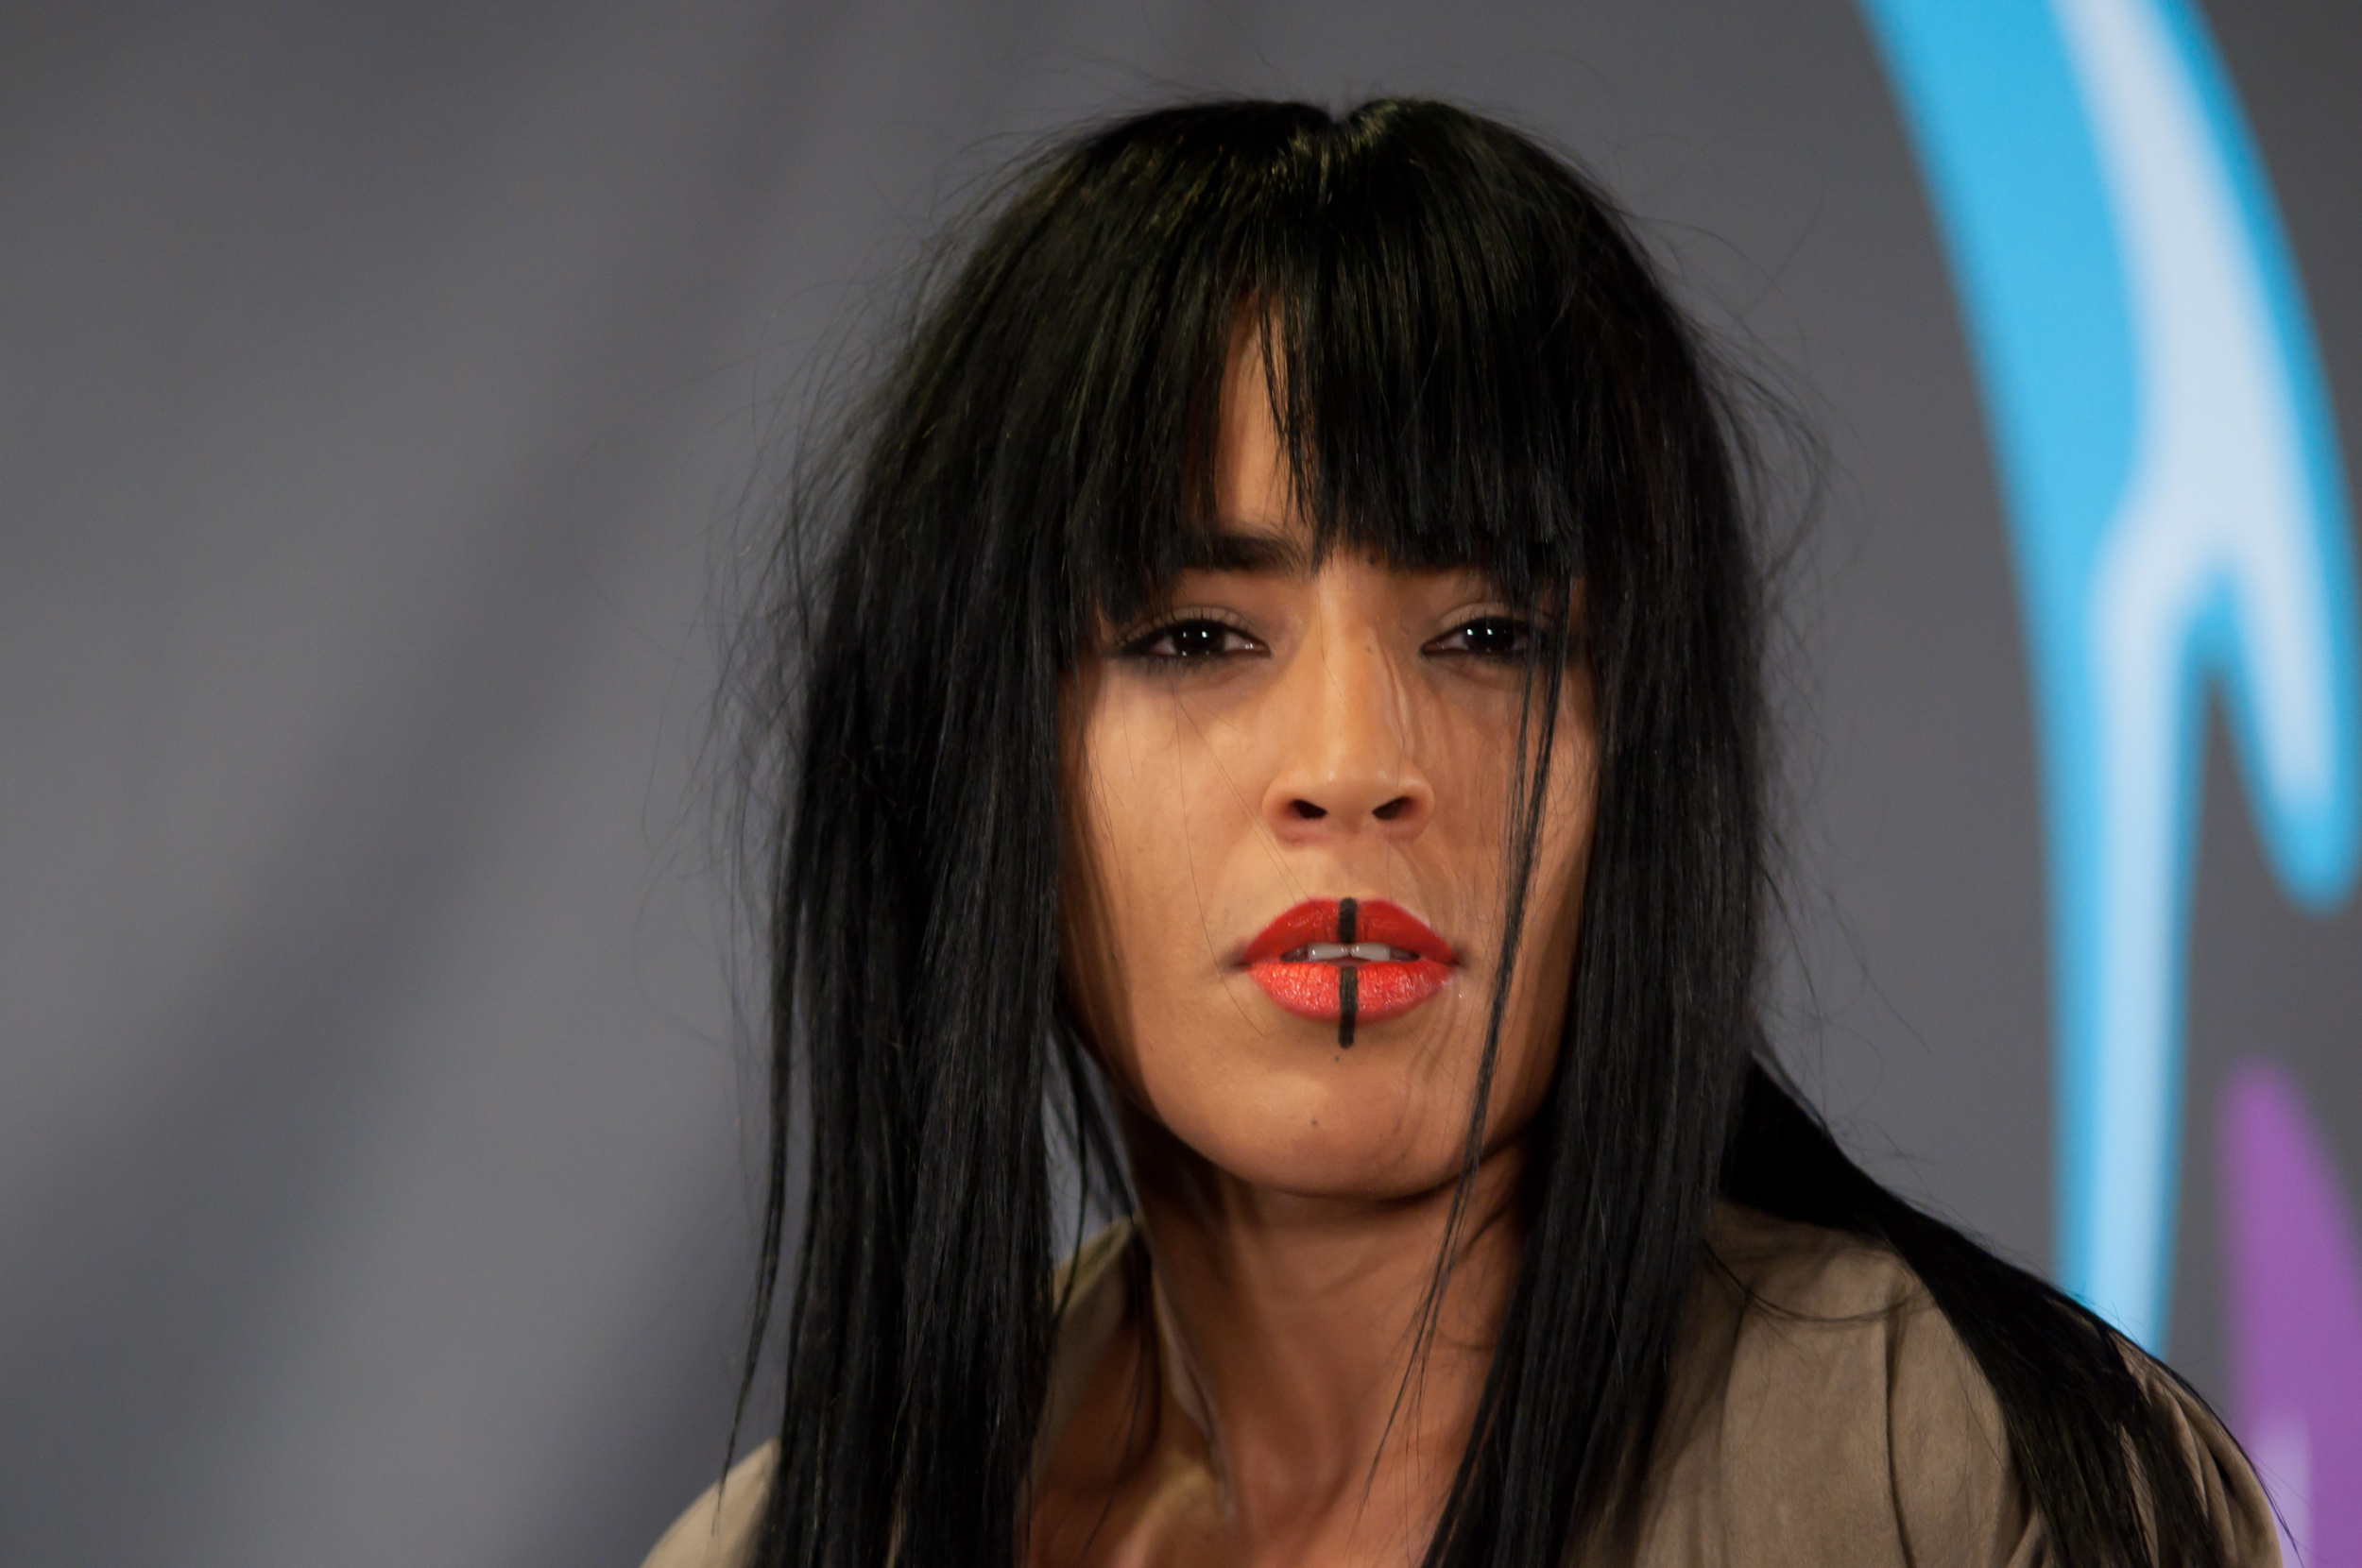 31 Press Conference >> File:Loreen 2010.jpg - Wikimedia Commons